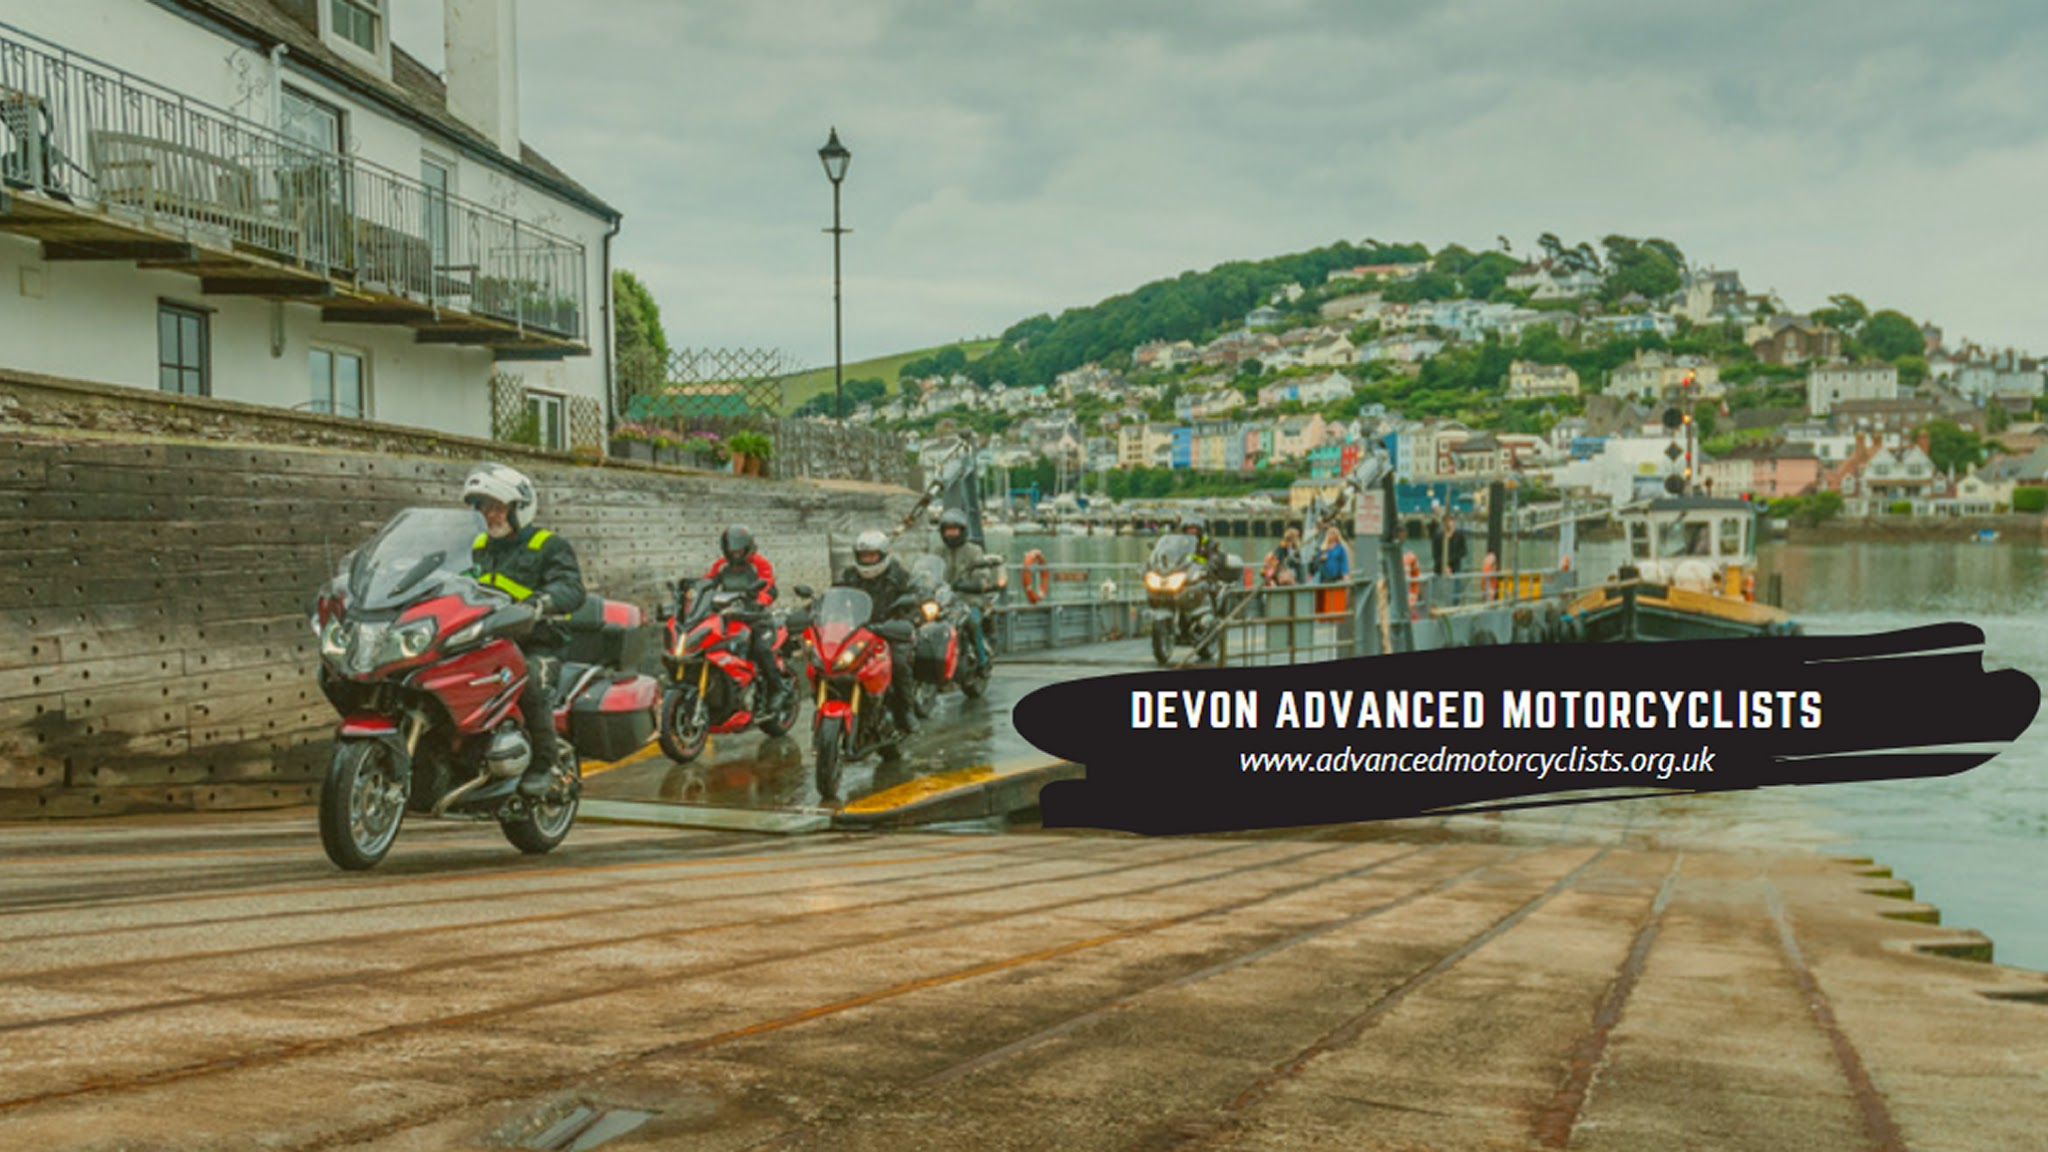 Devon Advanced Motorcyclists